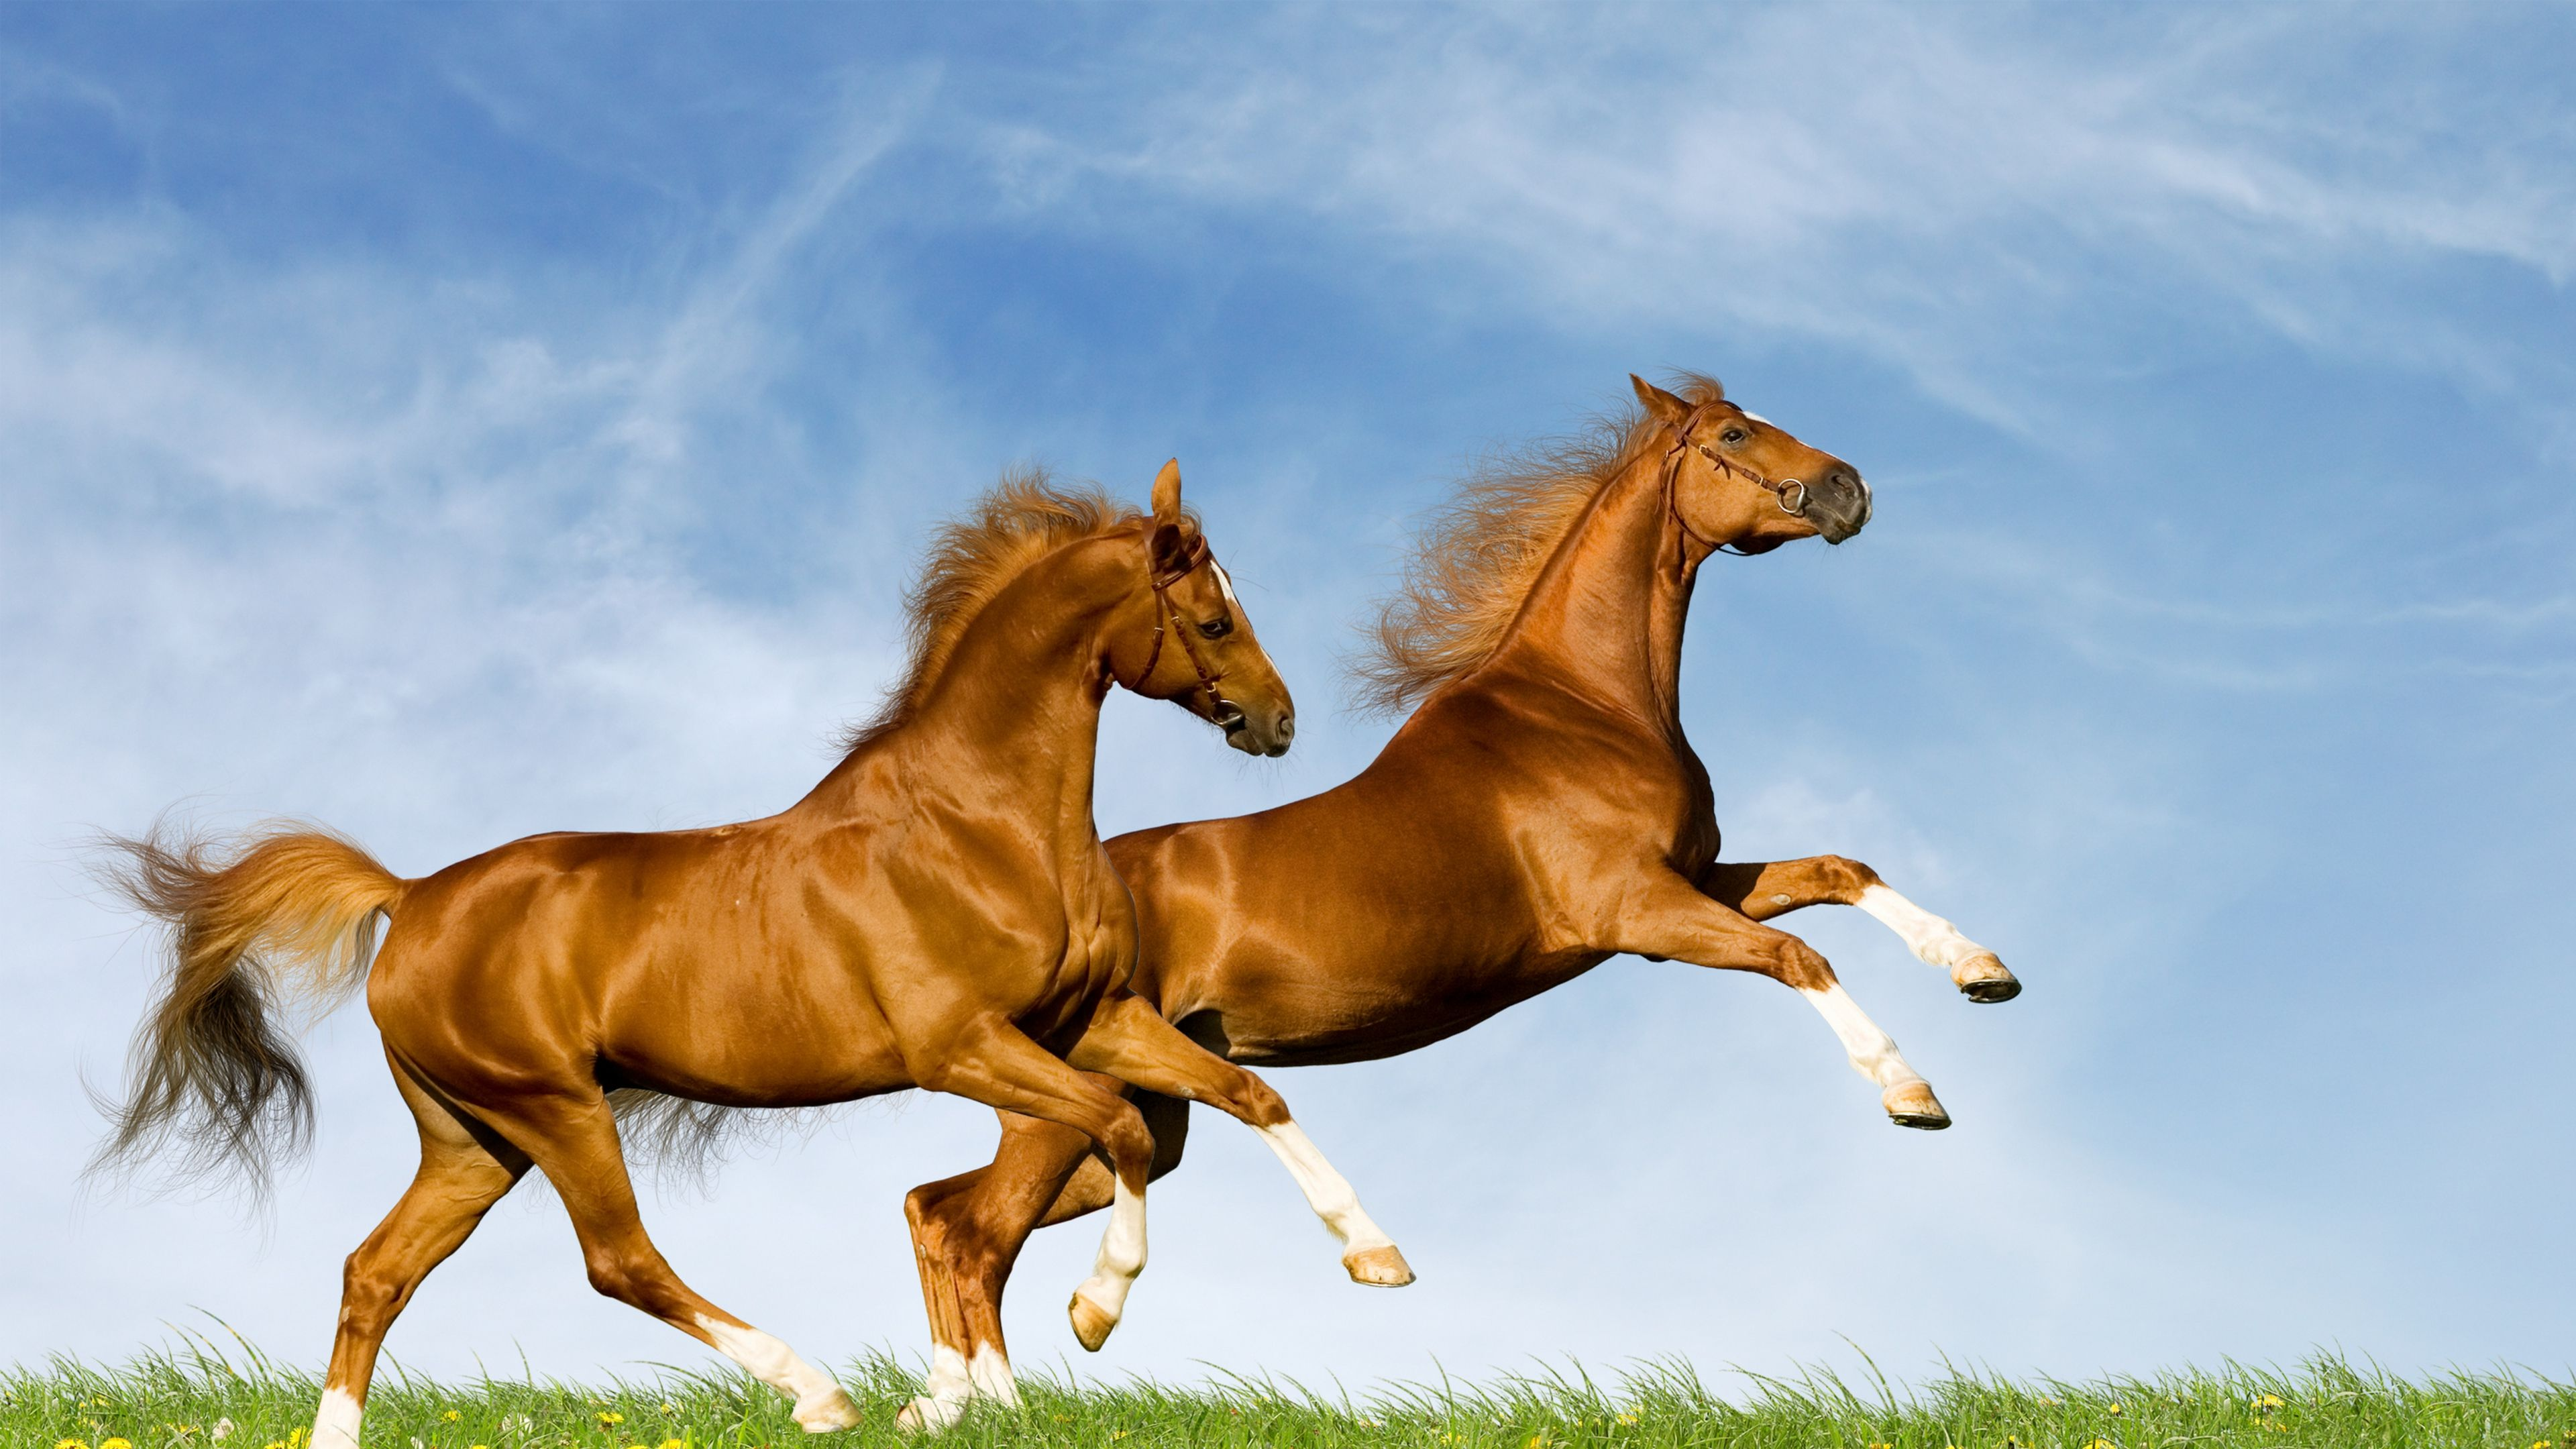 Great Wallpaper Horse Ultra Hd - abdd6e162a8dd861f0c9f95c2fe4436c  Pic_605811.jpg